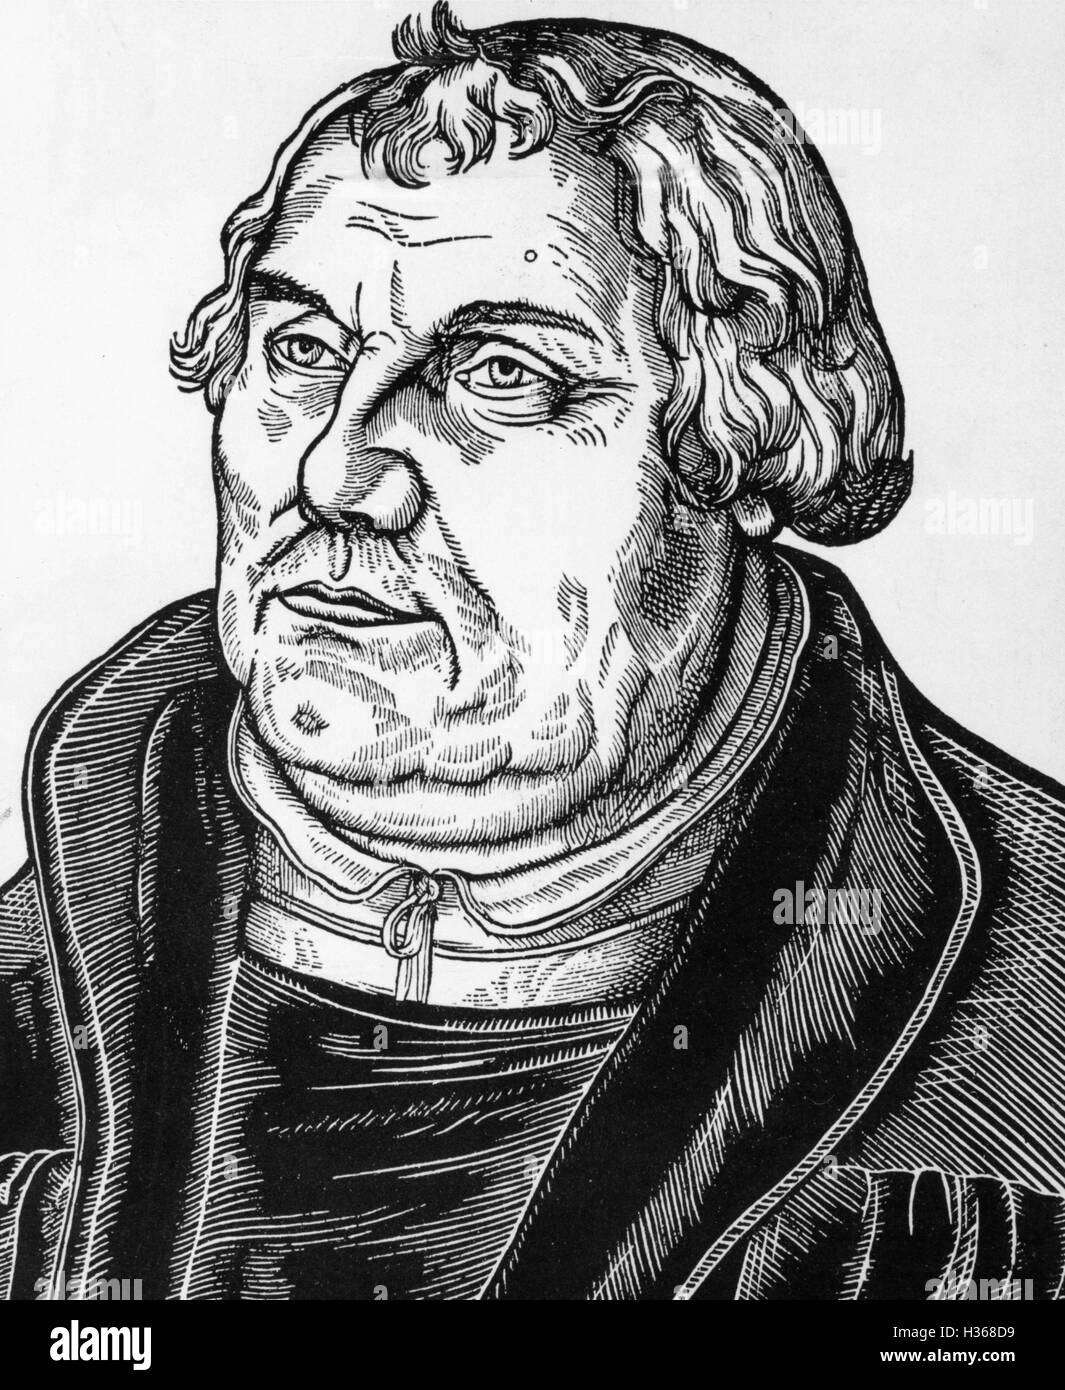 Woodcut of Martin Luther by Lucas Cranach - Stock Image